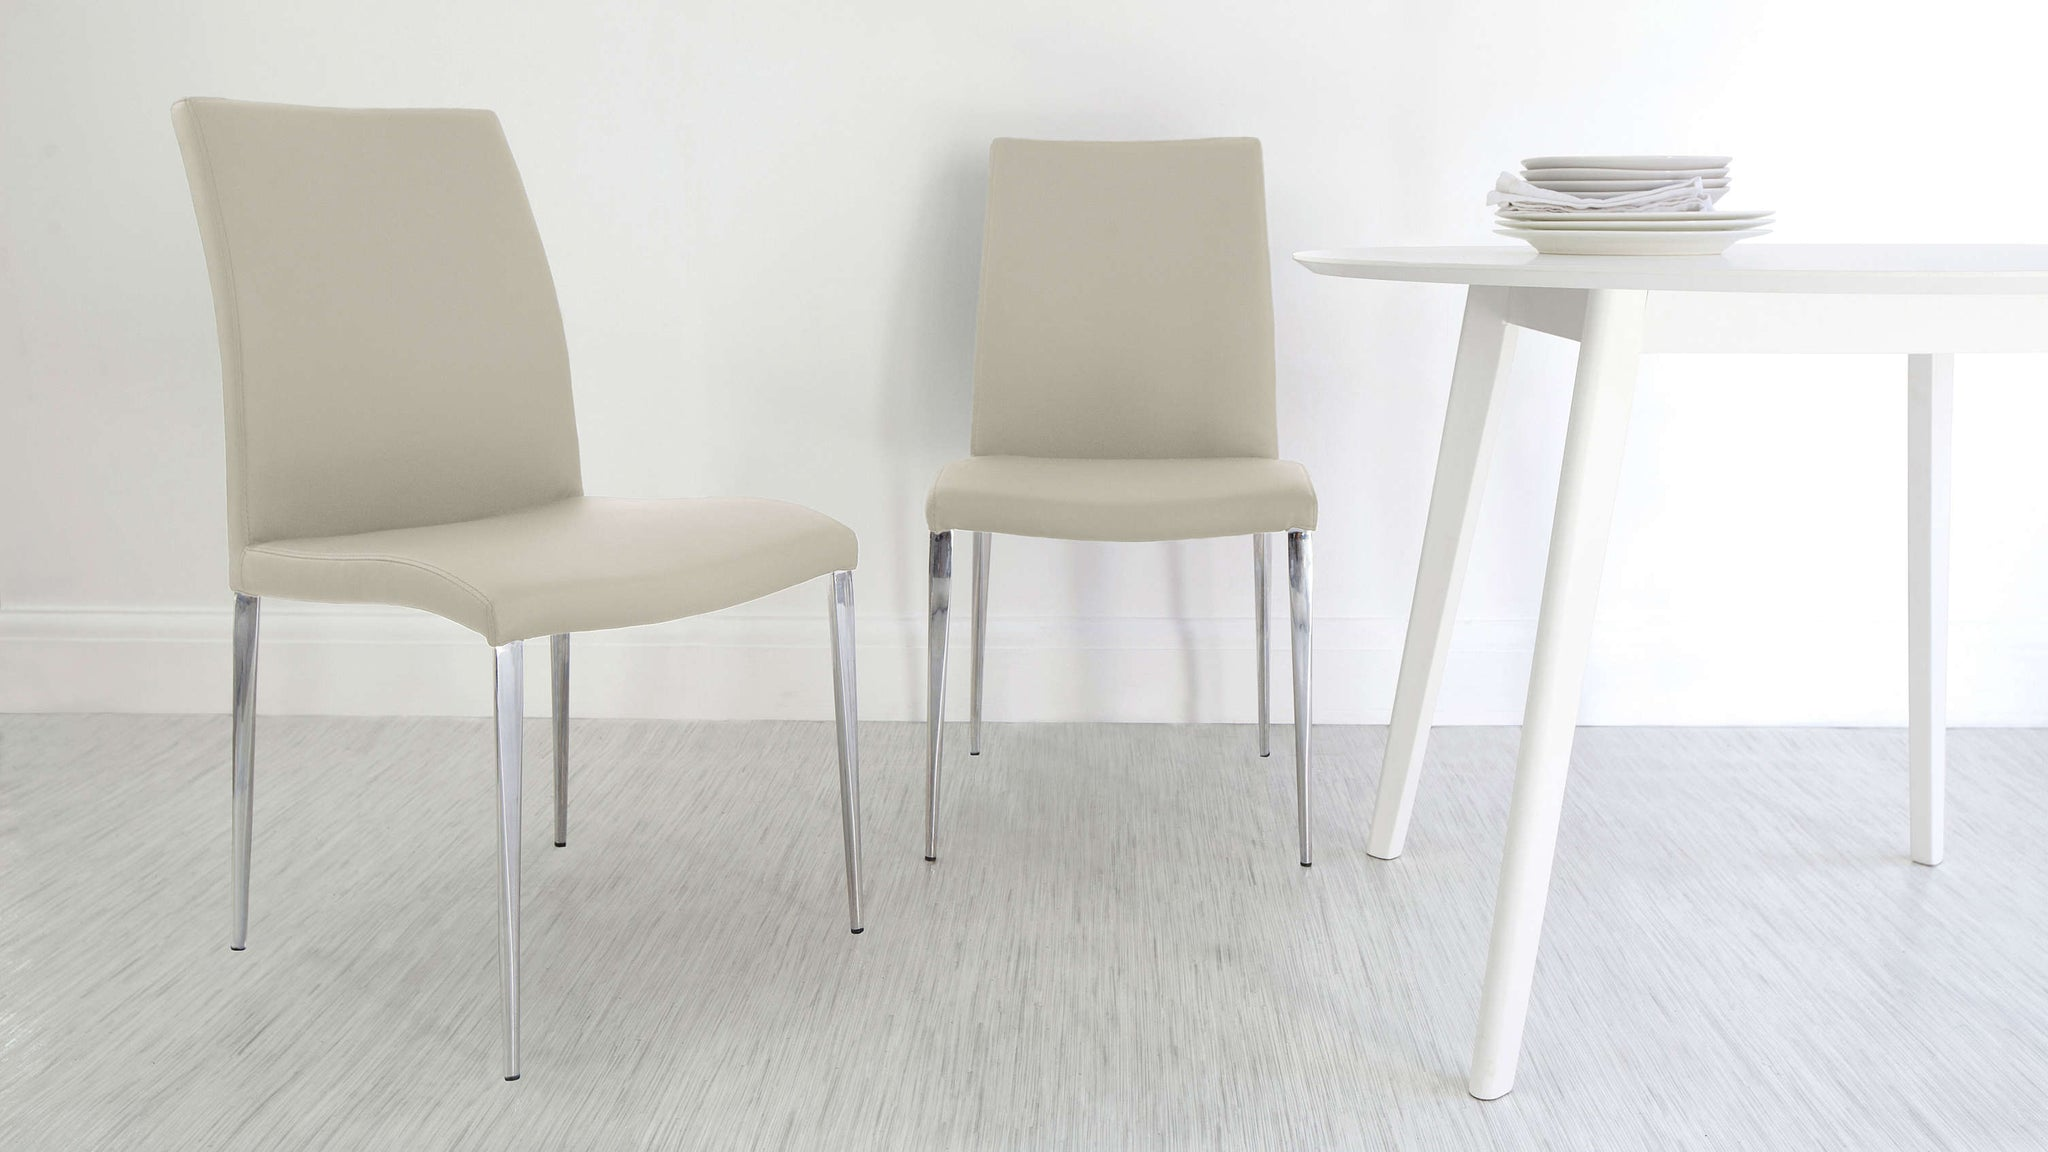 High Backed Beige Dining Chairs